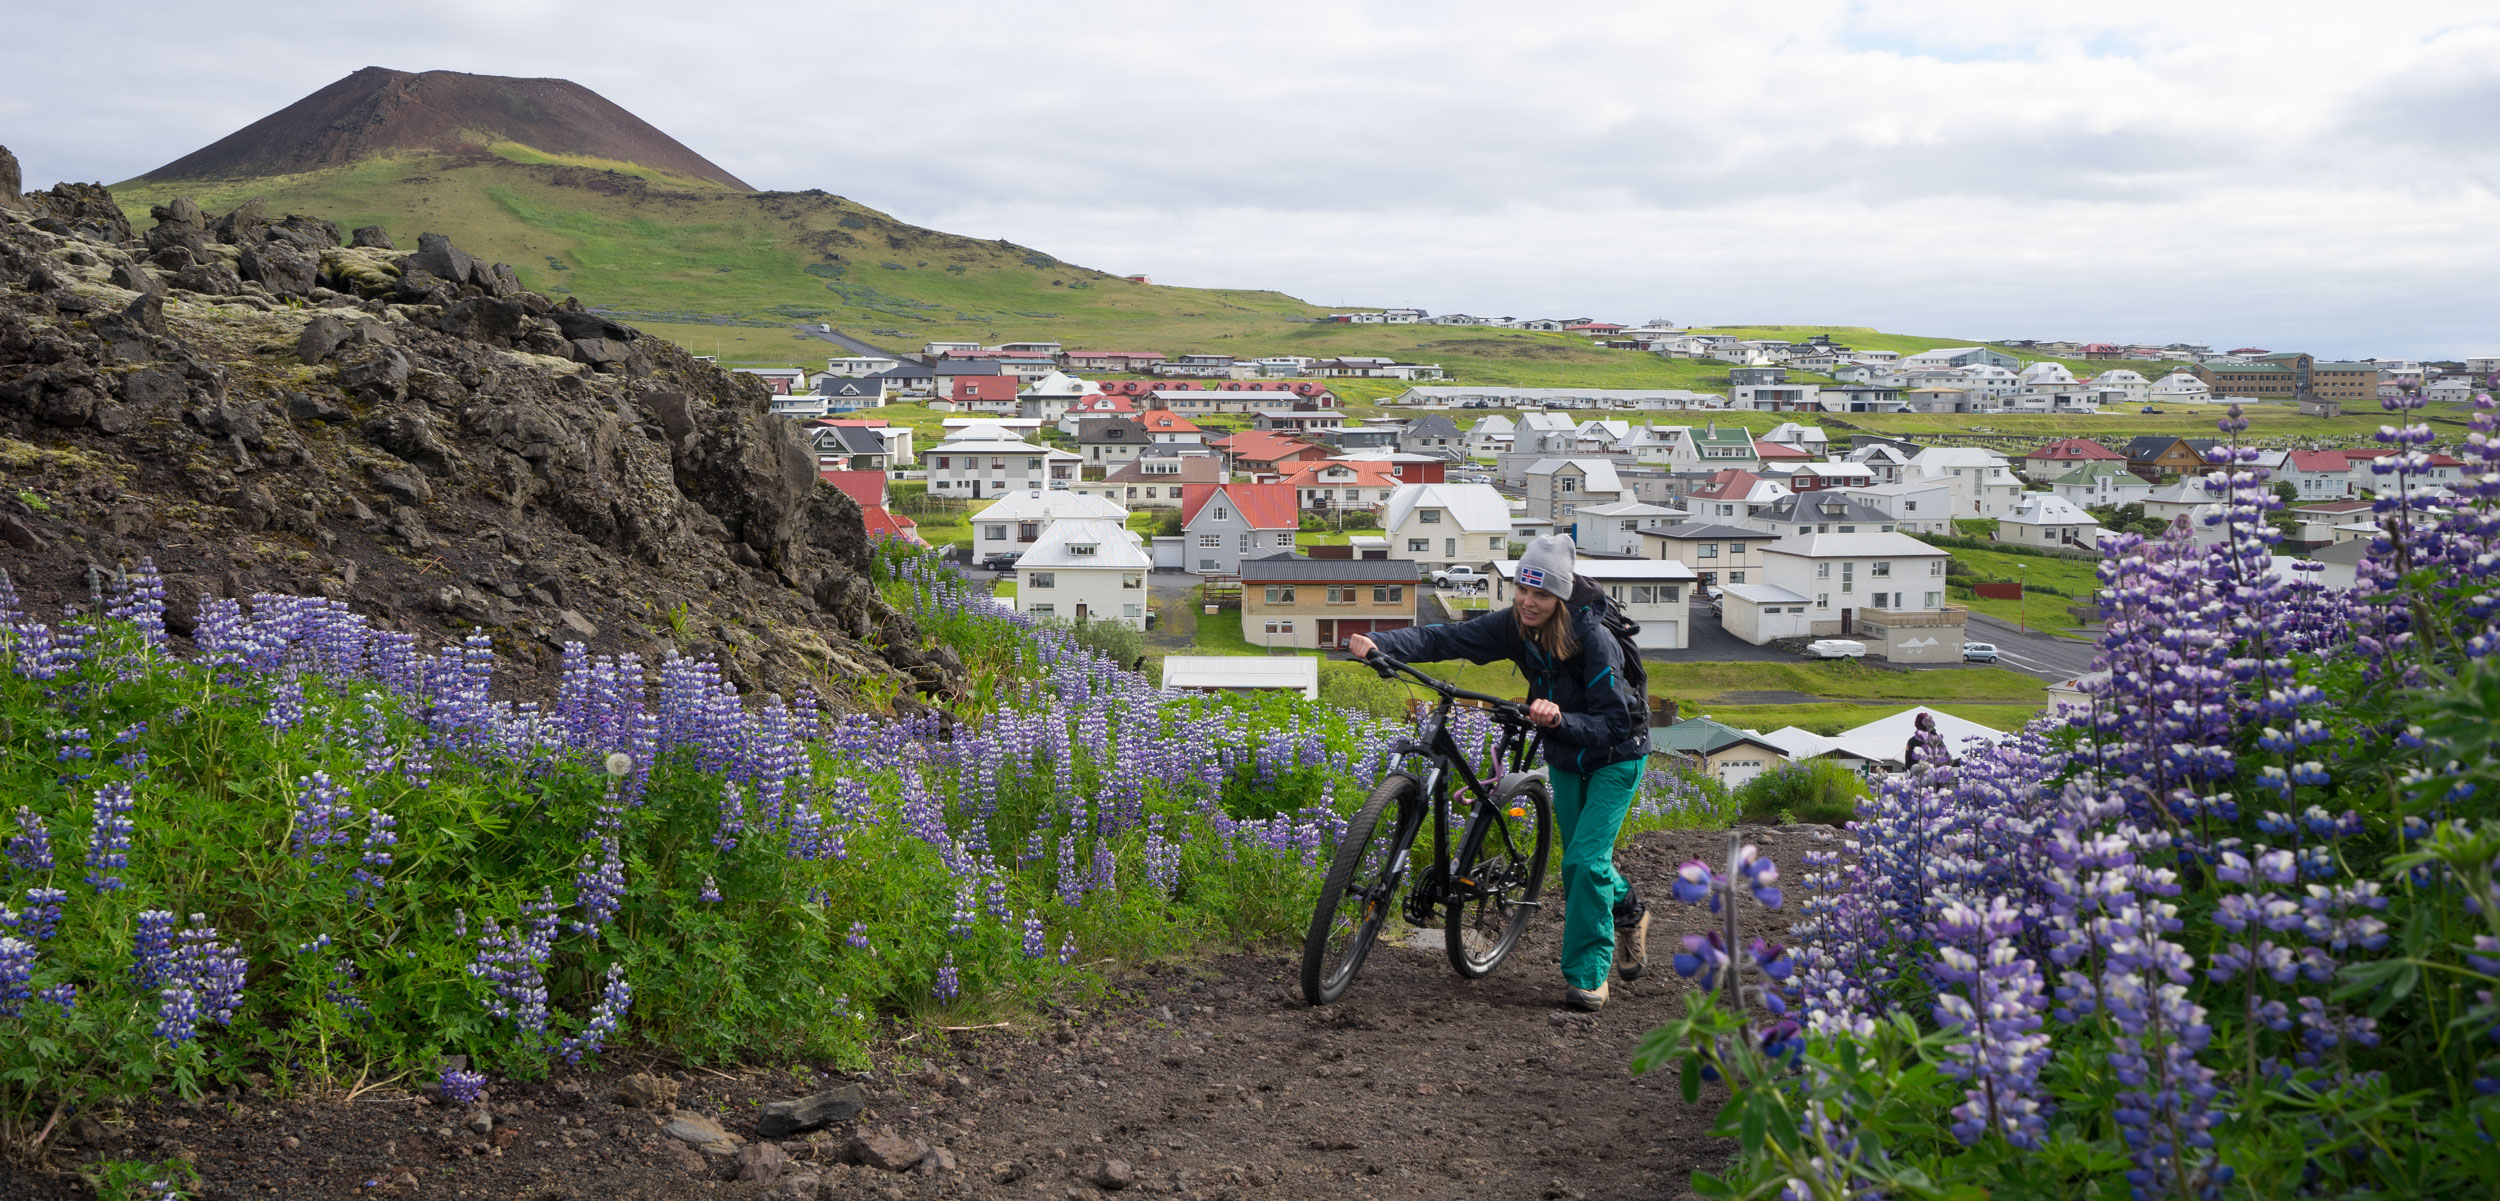 An icelandic woman pushes her bike up a hill surrounded by lupine